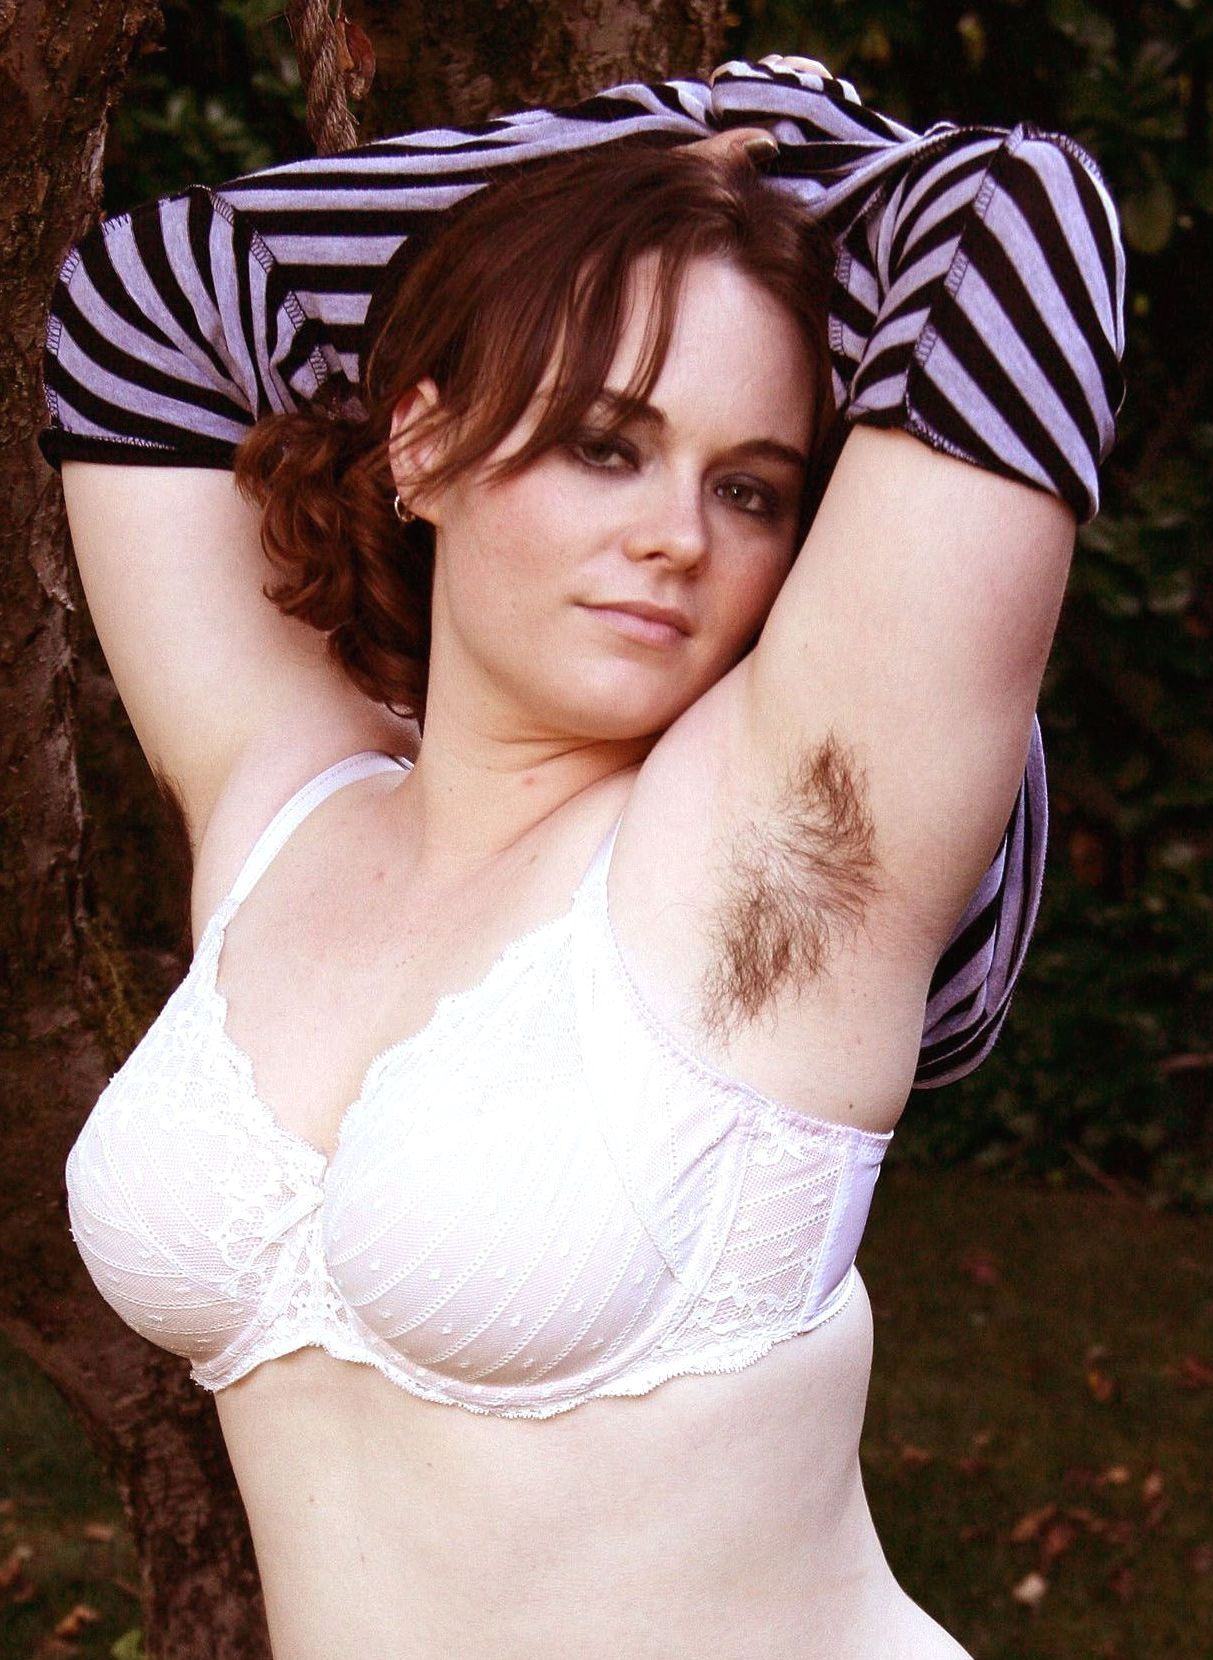 Pin On Hairy Womens Armpits-3539